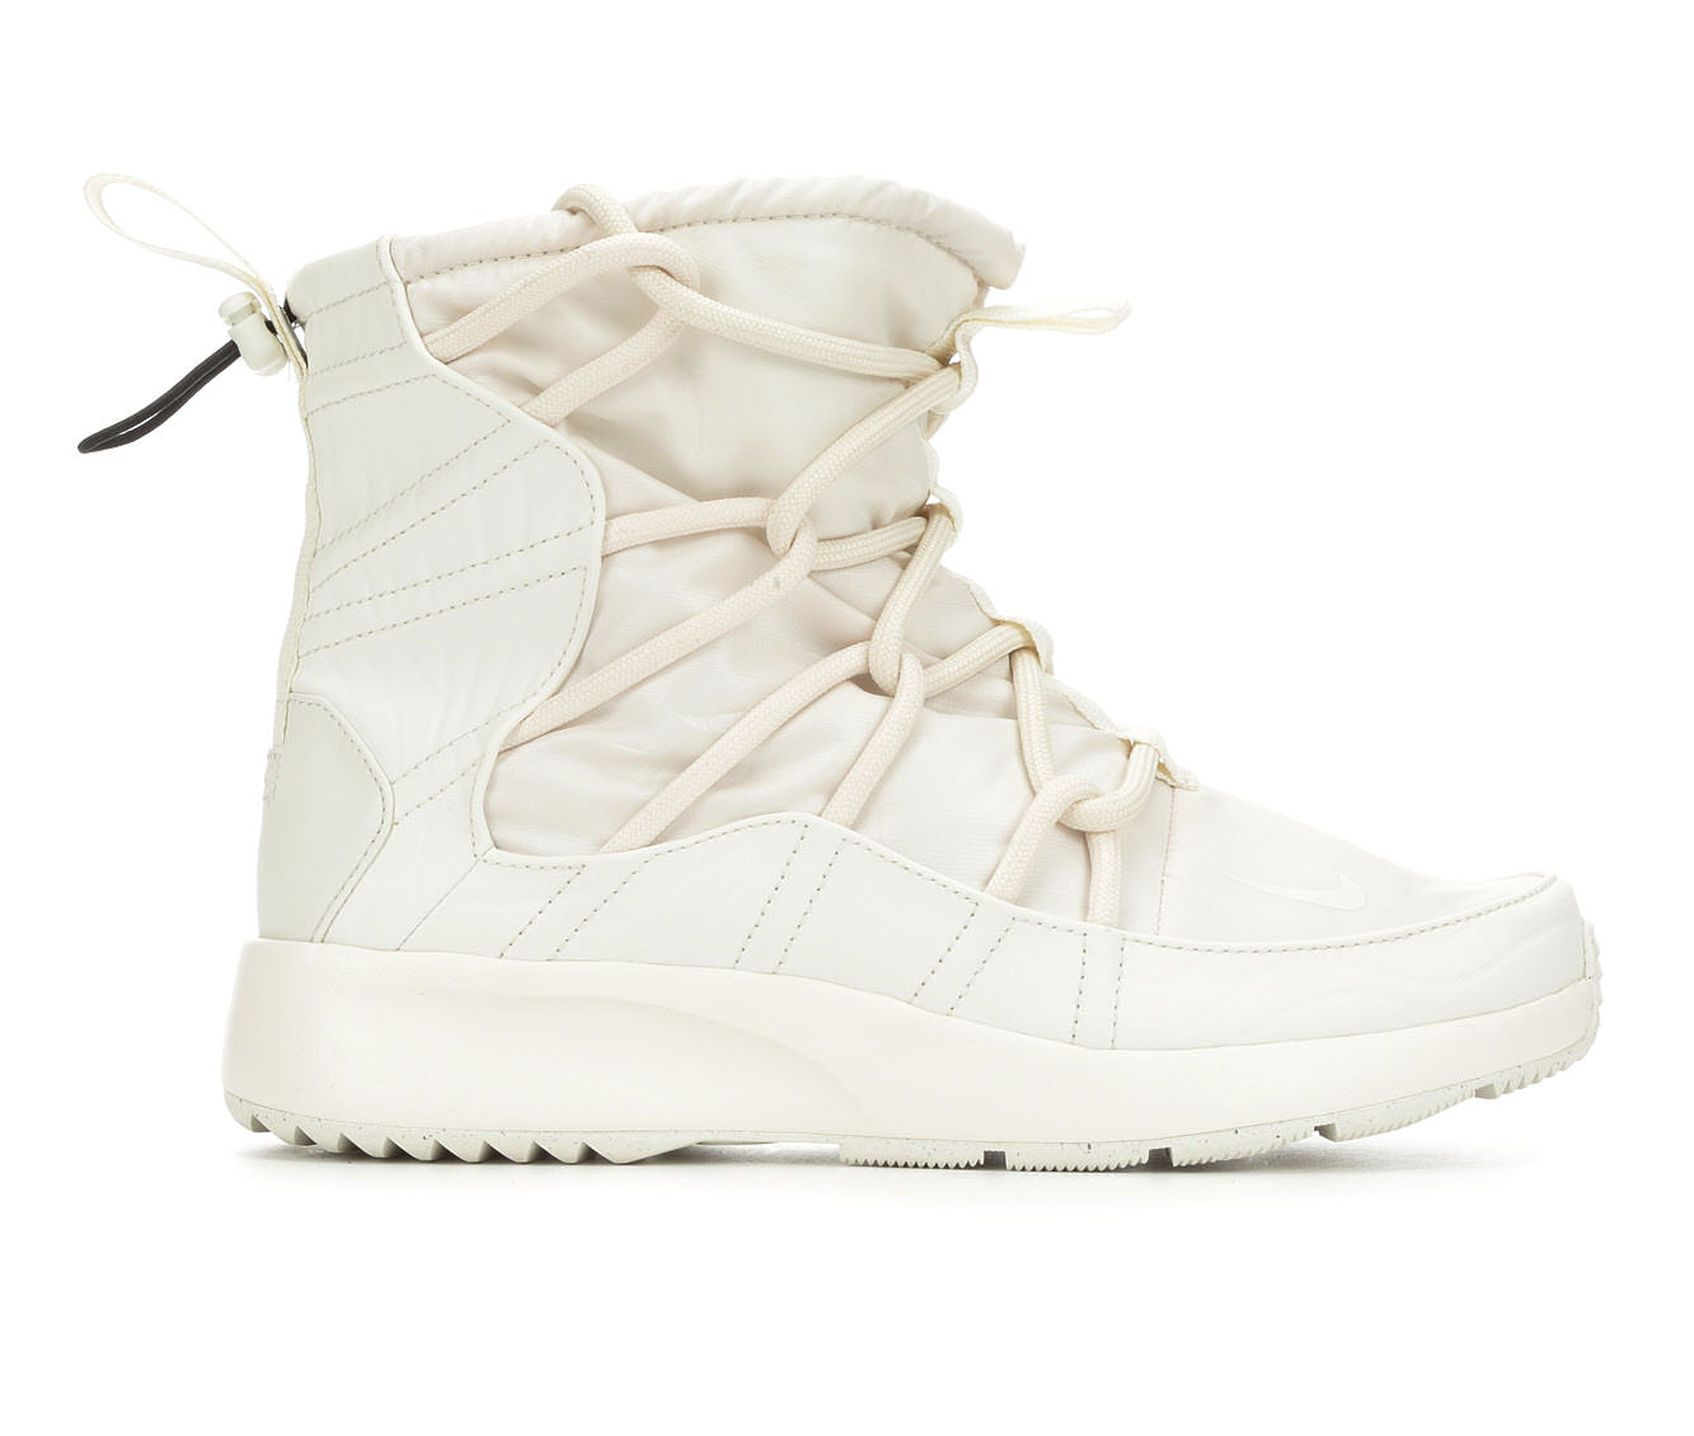 largest selection of complete in specifications how to choose Women's Nike Tanjun High Rise Sneaker Boots | Shoes | Boots ...